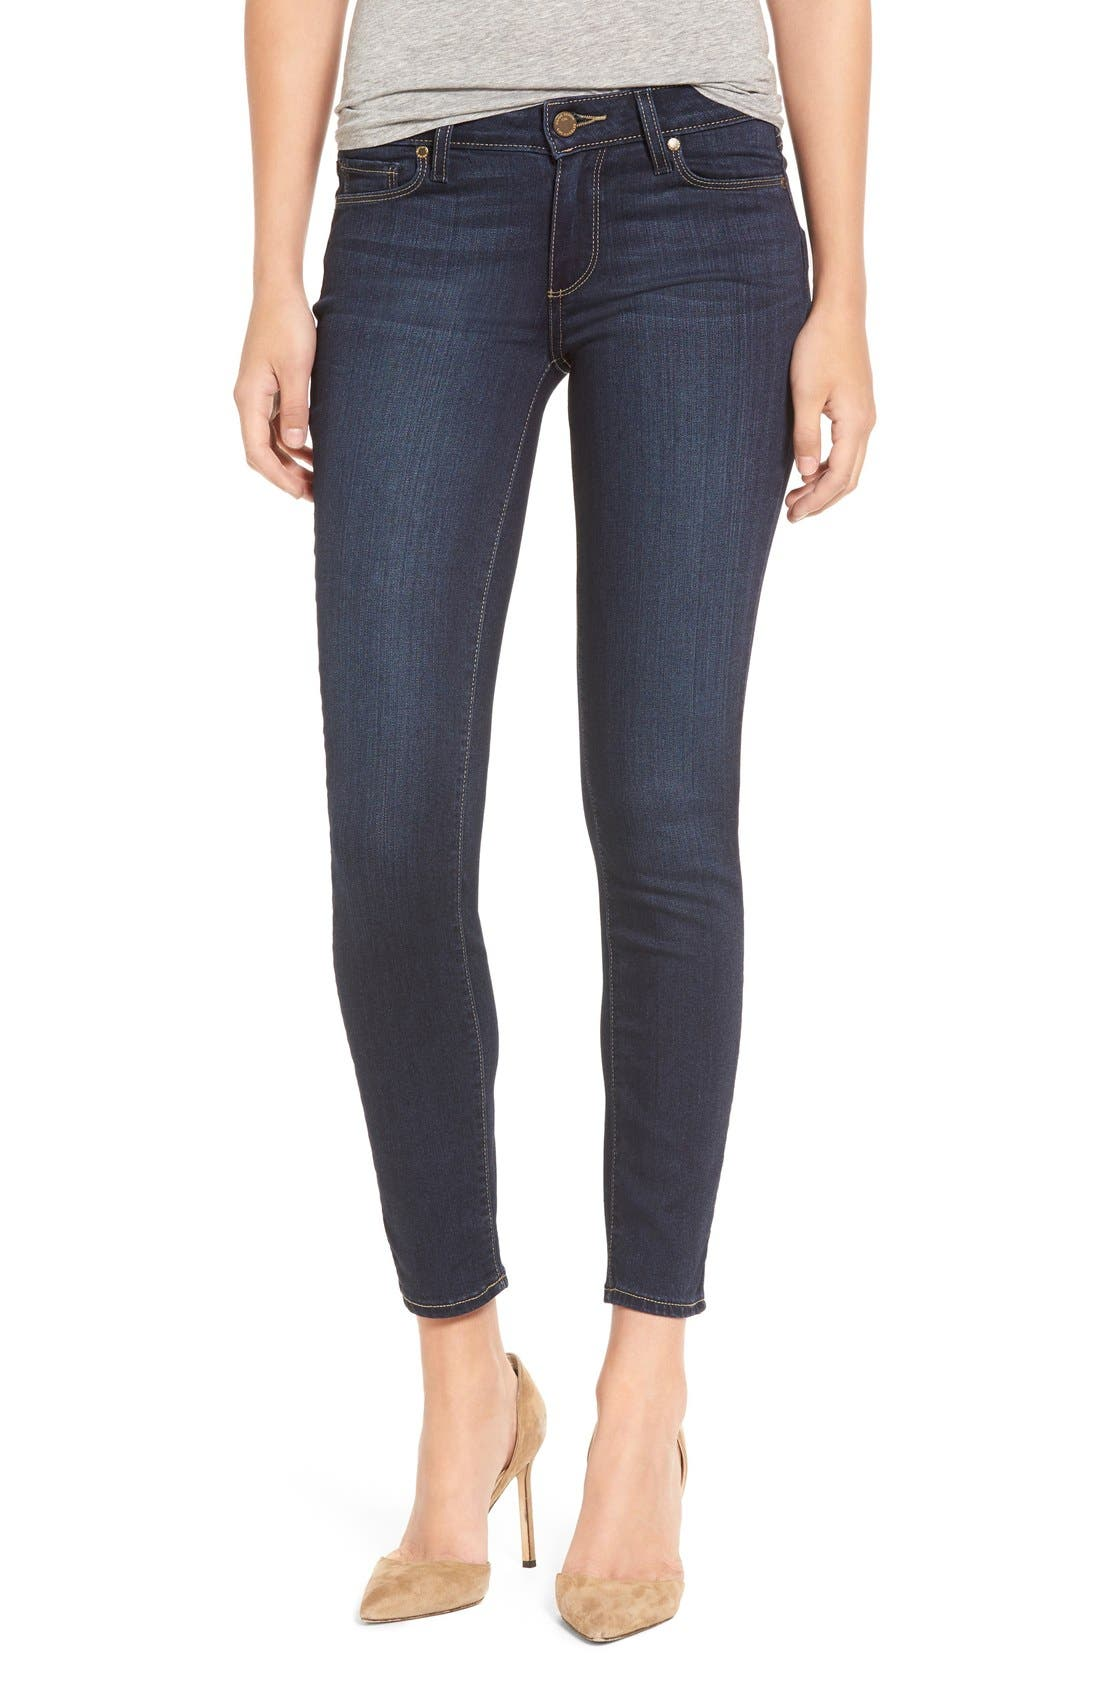 Main Image - PAIGE 'Transcend - Verdugo' Ankle Ultra Skinny Jeans (Hartmann) (Nordstrom Exclusive)